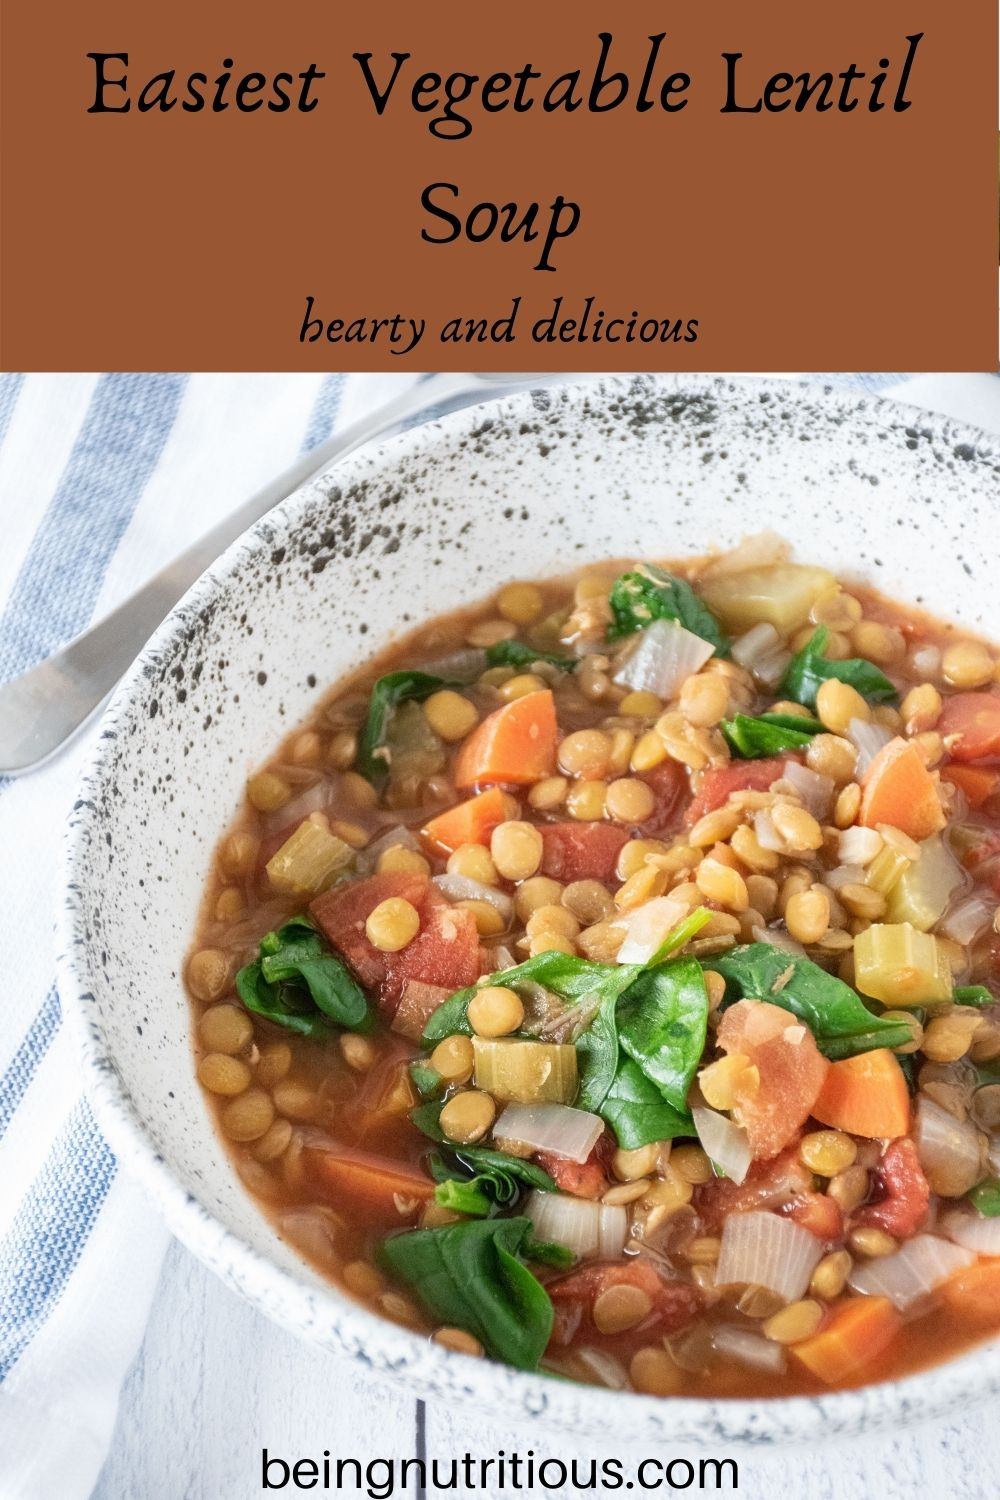 Lentil soup in a bowl. Text overlay: Easiest Vegetable Lentil soup; hearty and delicious.